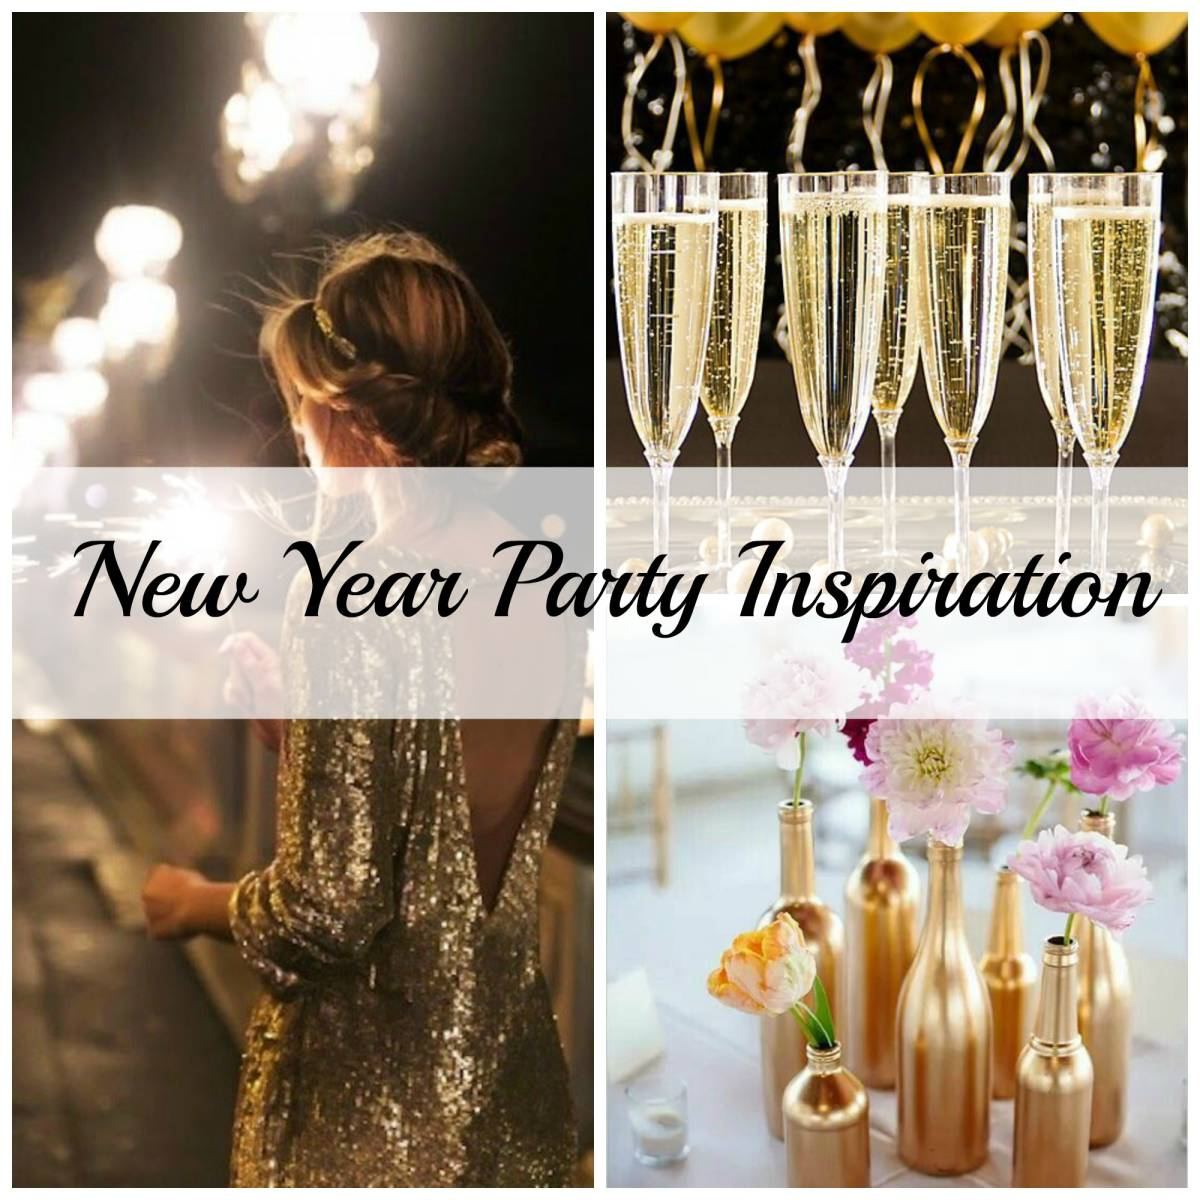 New Year Party Inspiration-Inspired Space